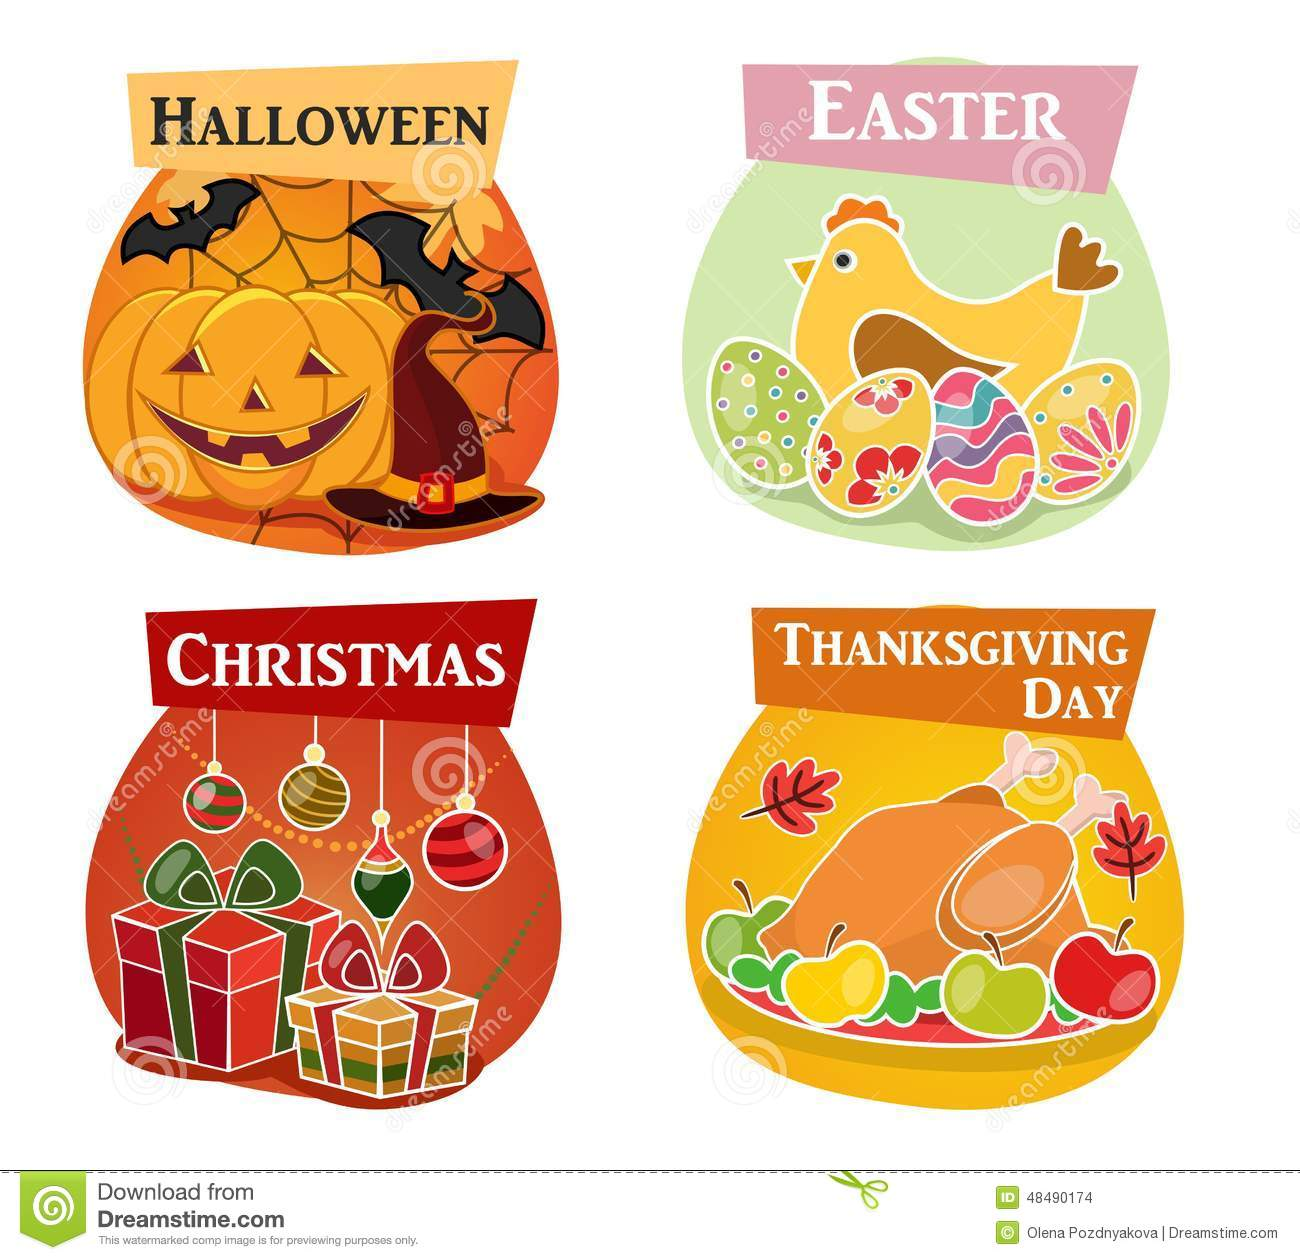 thanksgiving day easter halloween christmas flat icons - Halloween Thanksgiving Christmas